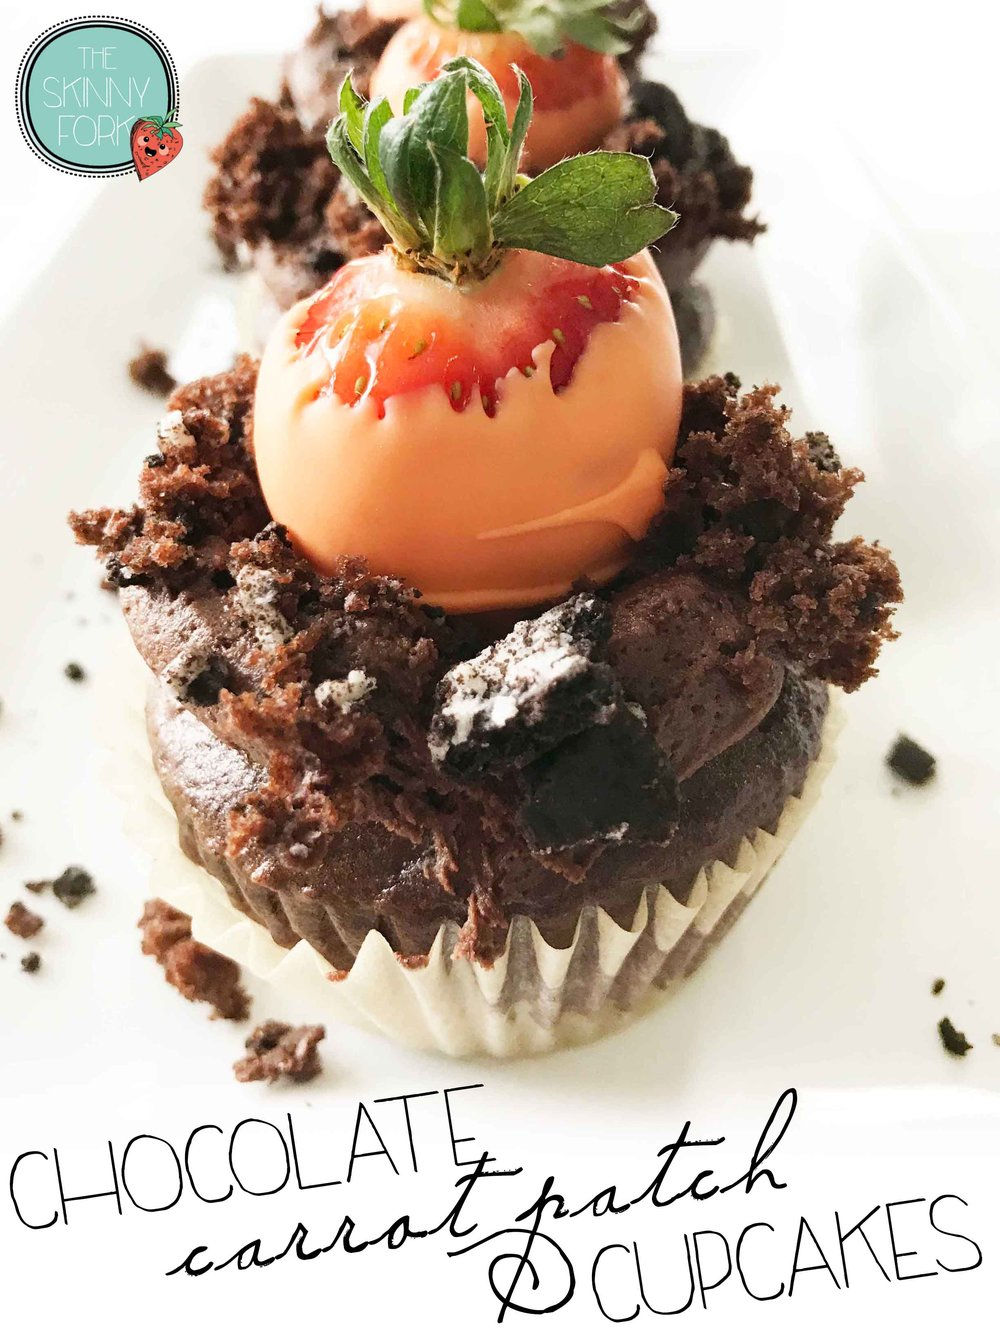 carrot-patch-cupcakes-pin.jpg